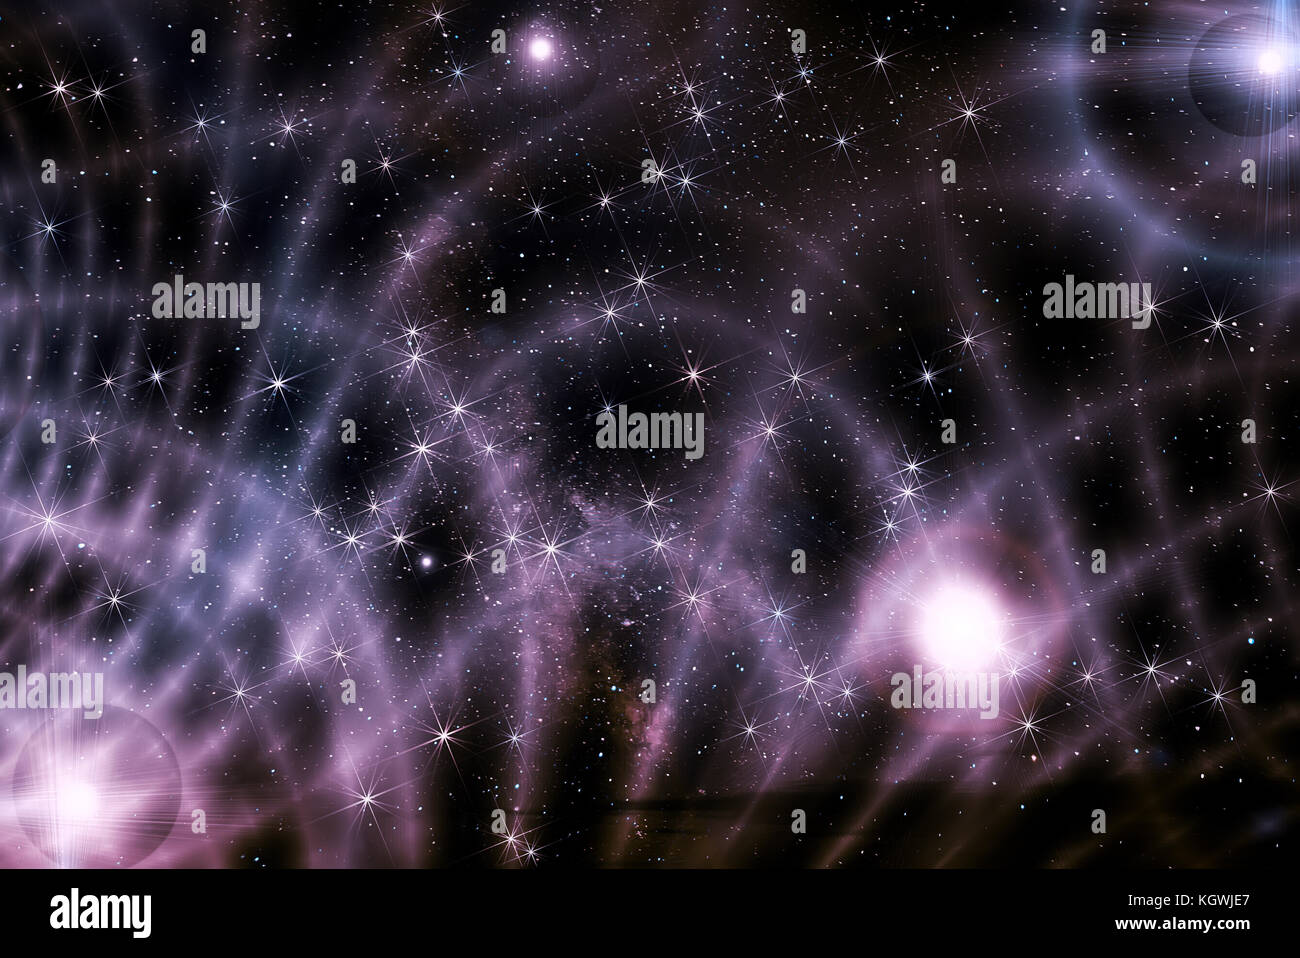 Colorful abstract background of deep space with stars, nebulae and star dust in black and lilac colors - Stock Image